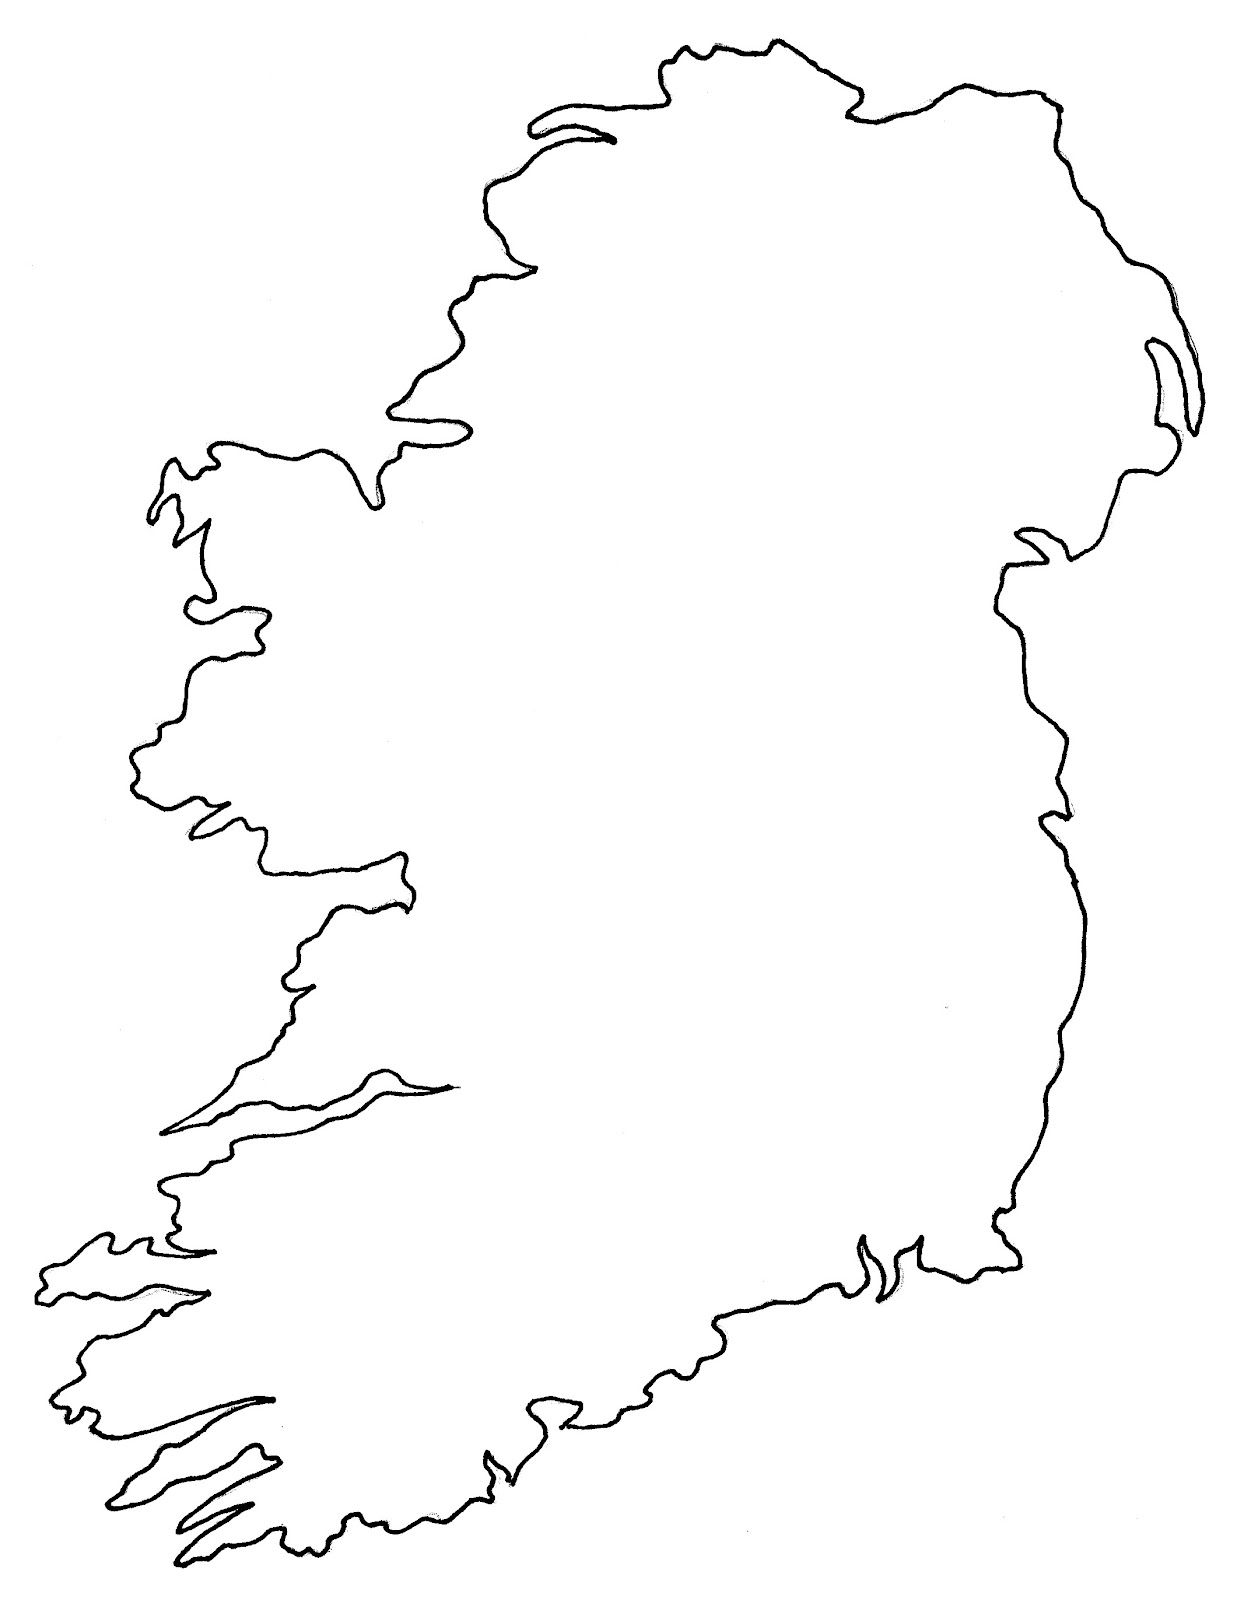 Blank Map Of Ireland Counties.Blank Map Of Ireland Twitterleesclub